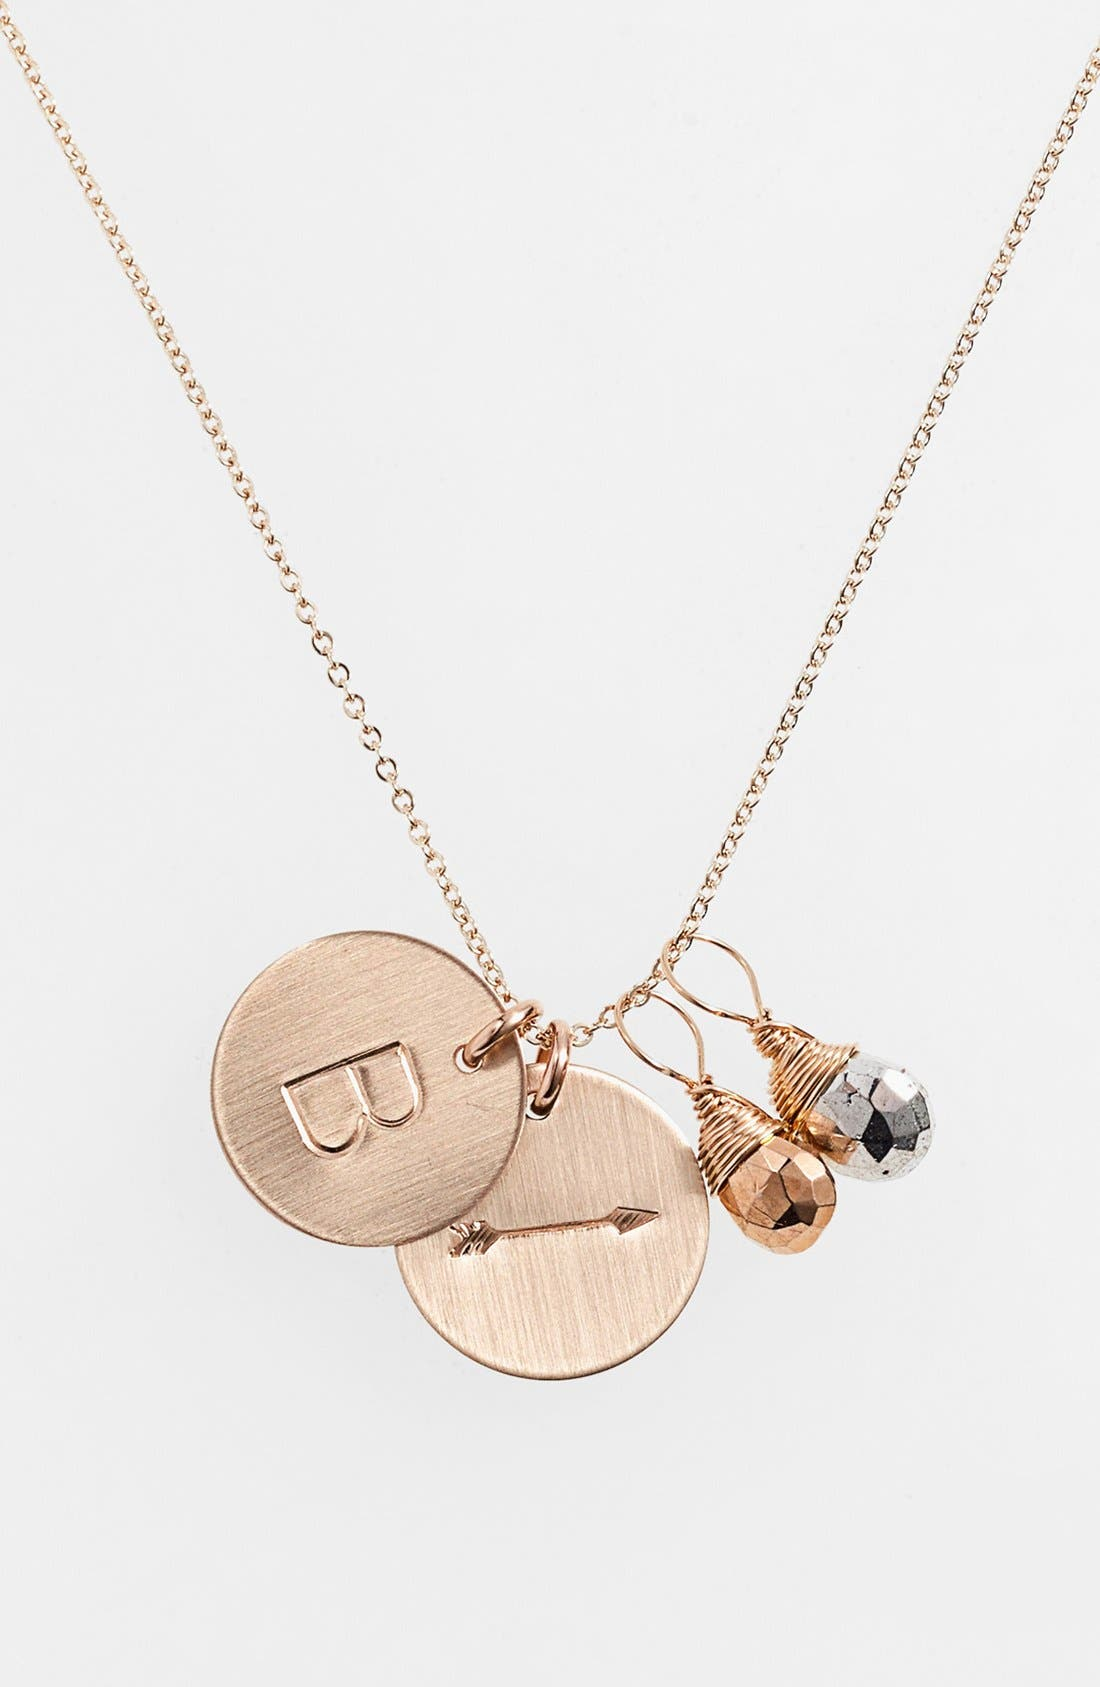 Main Image - Nashelle Pyrite Initial & Arrow 14k-Gold Fill Disc Necklace